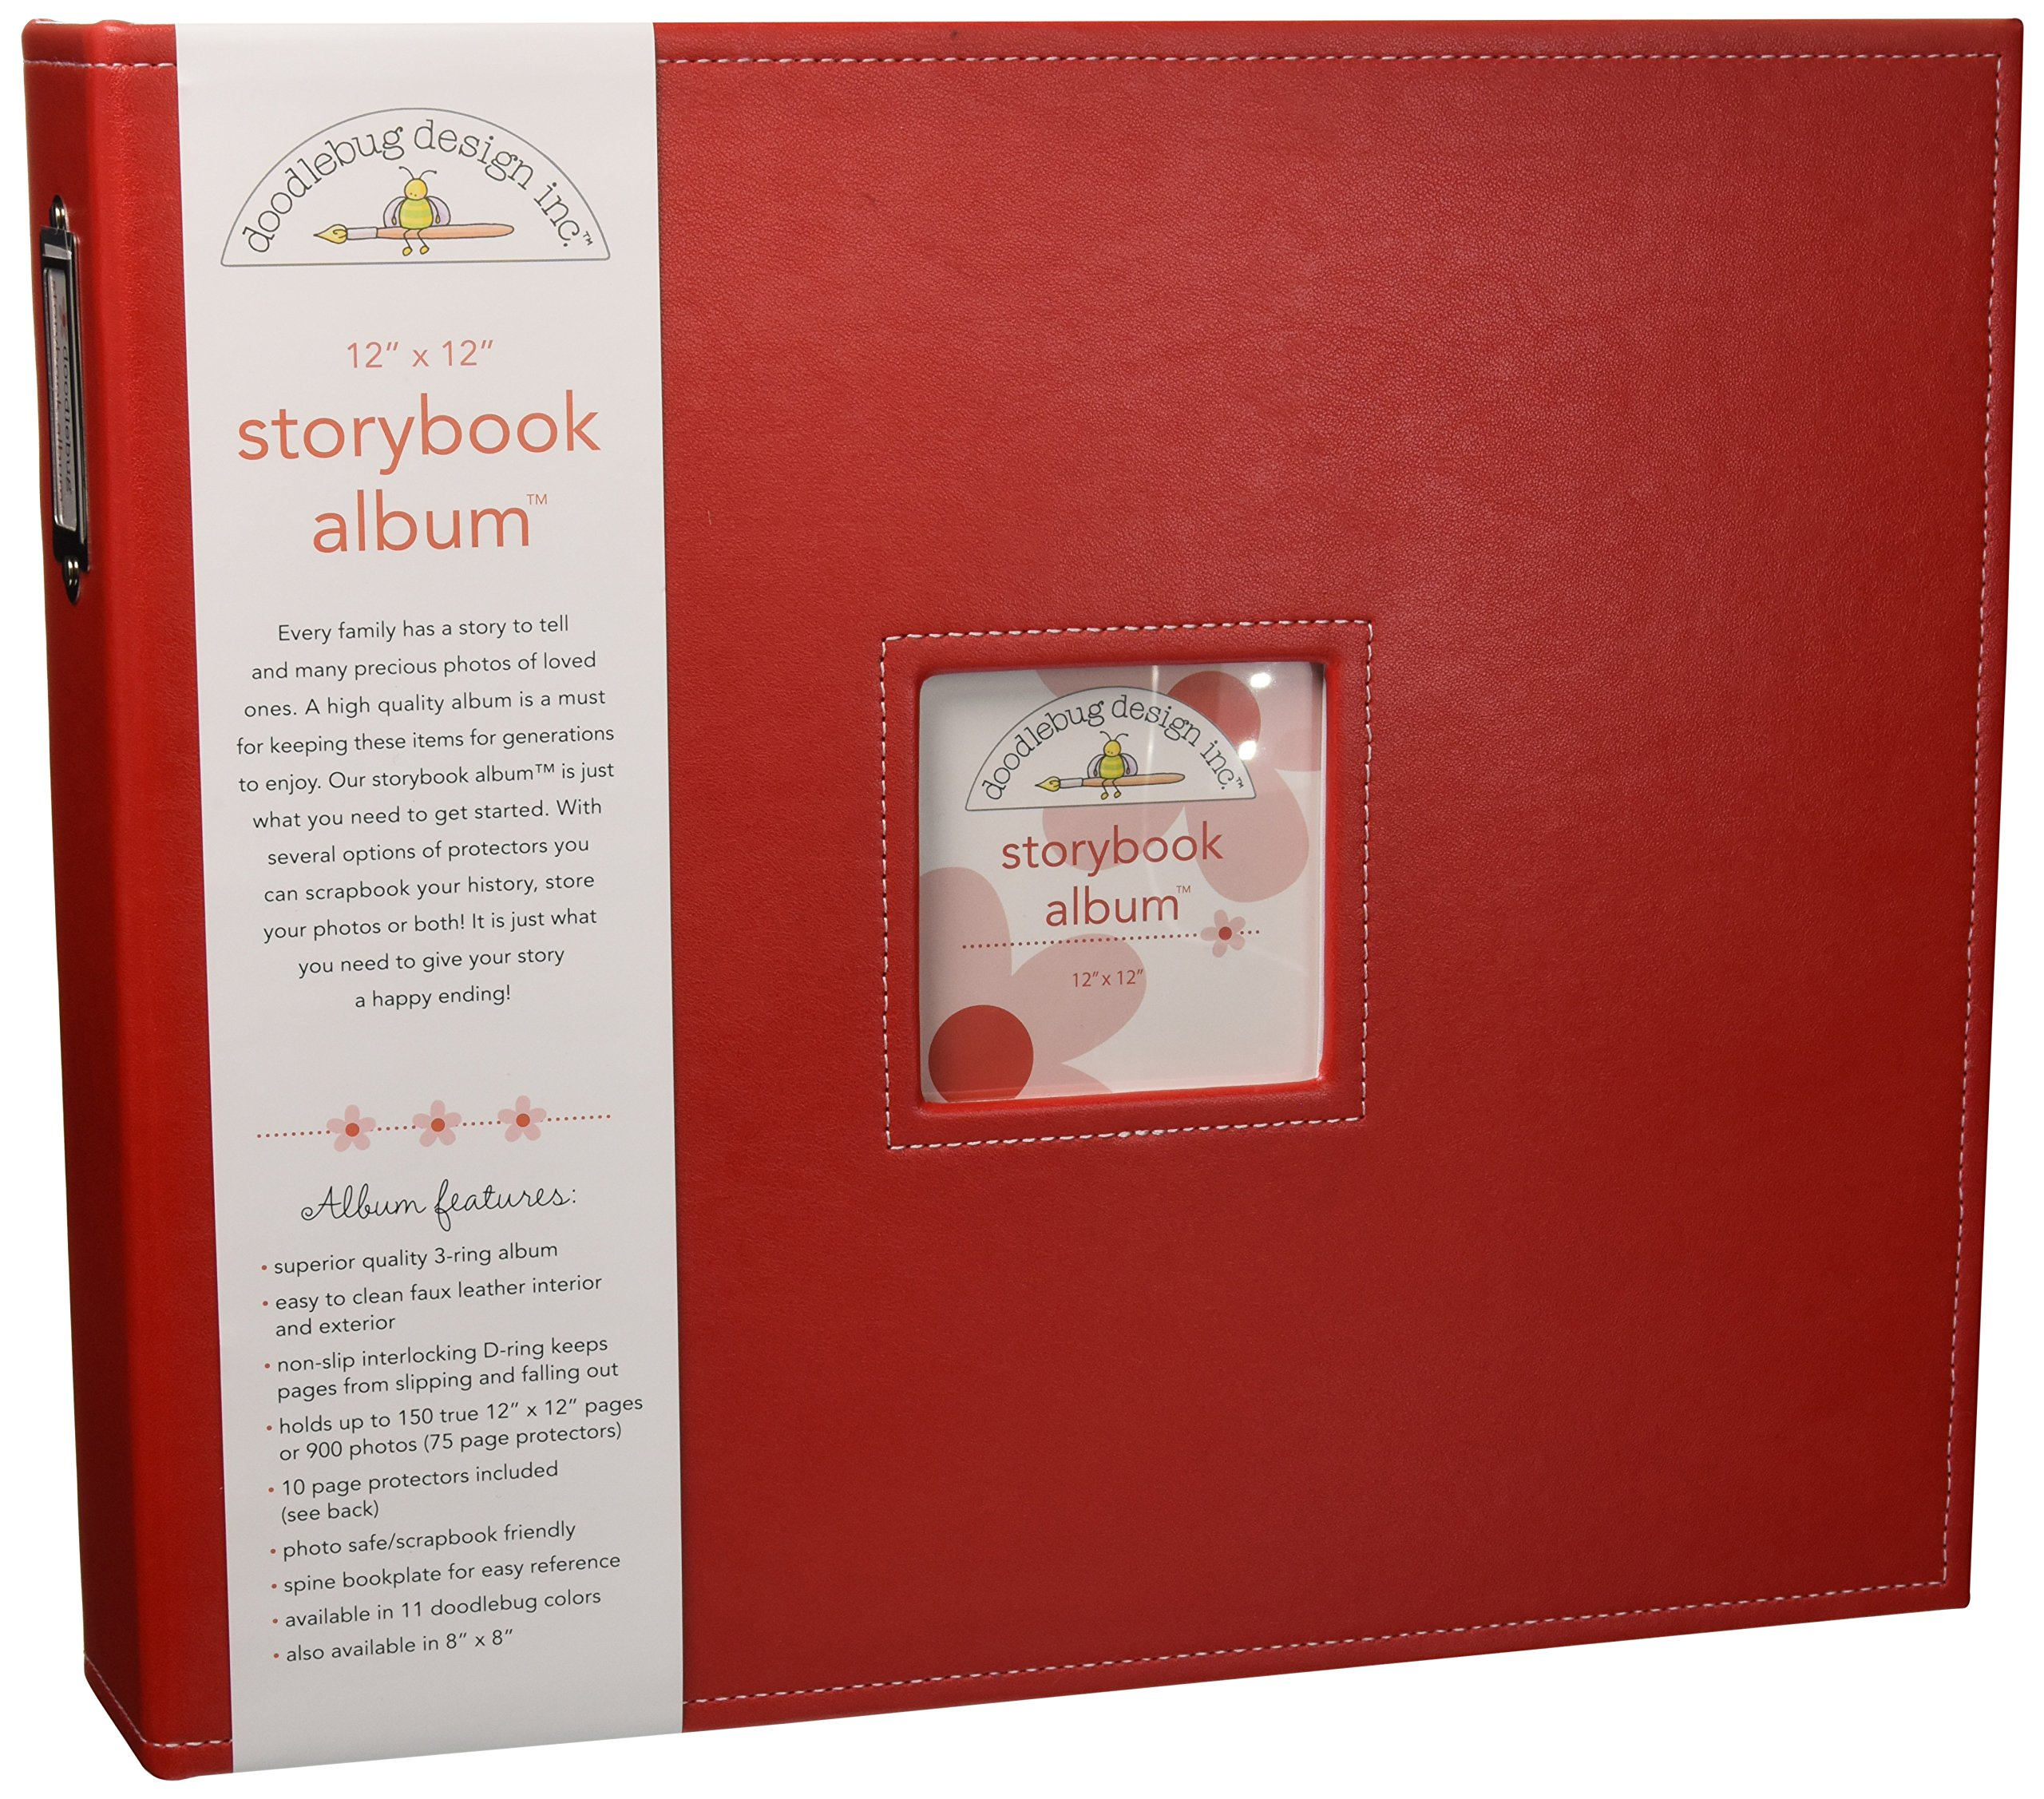 Doodlebug Design Ladybug Storybook for Scrapbooking Album, 12 by 12-Inch